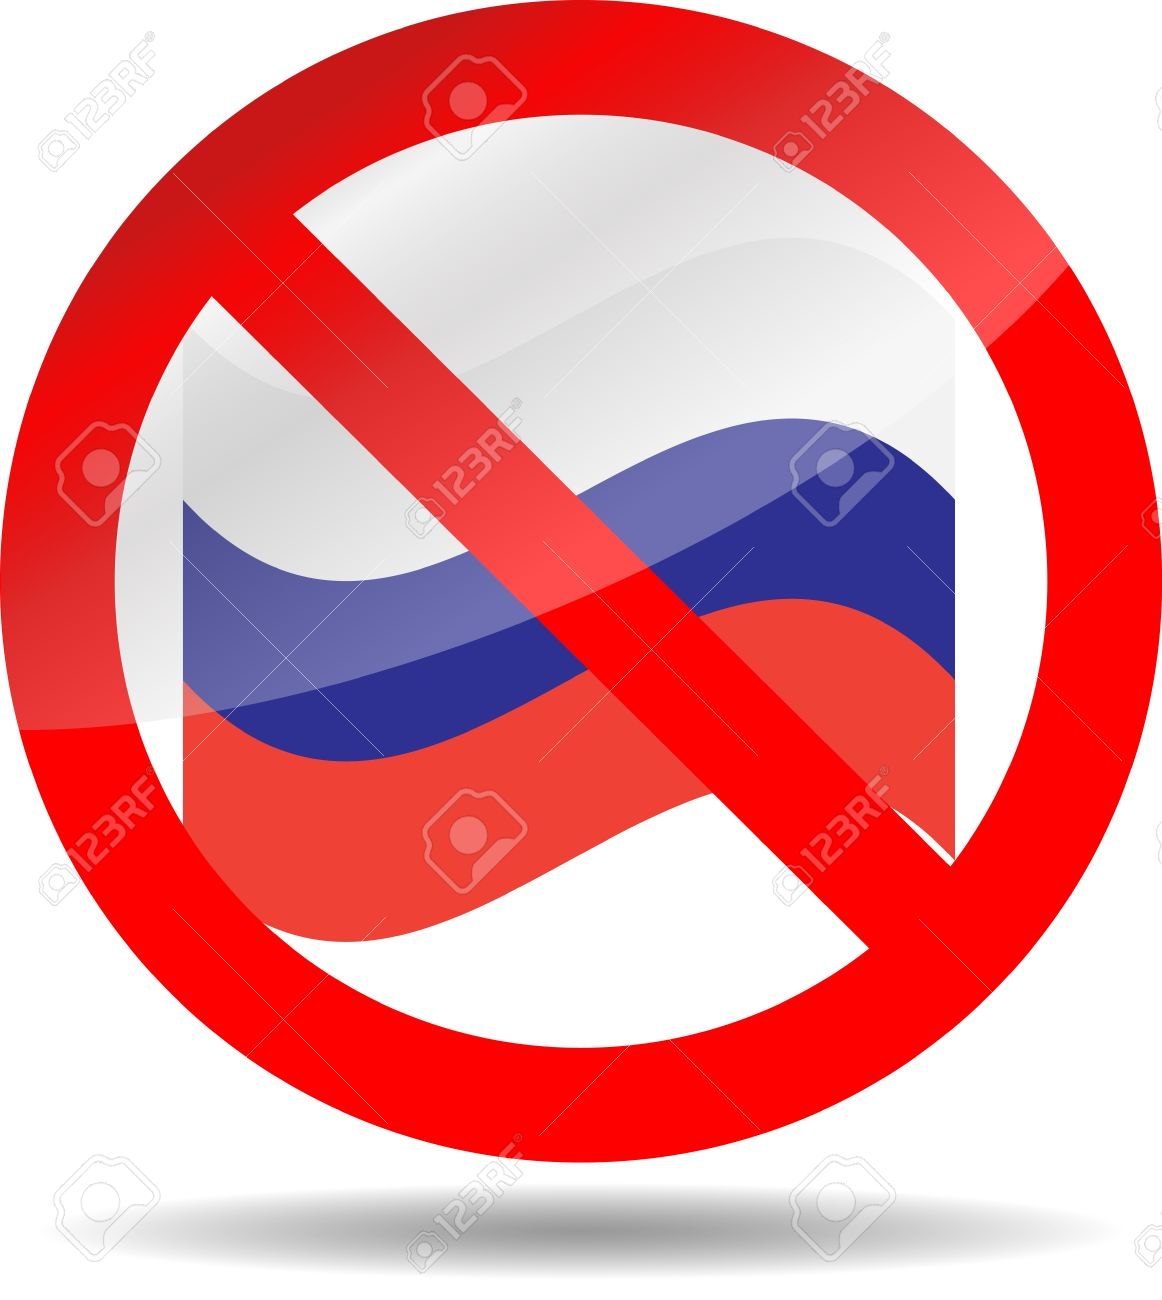 russian ban prohibition russia sanction and stop sign warning rh 123rf com stop sign graphics morrisville stop sign graphics morrisville